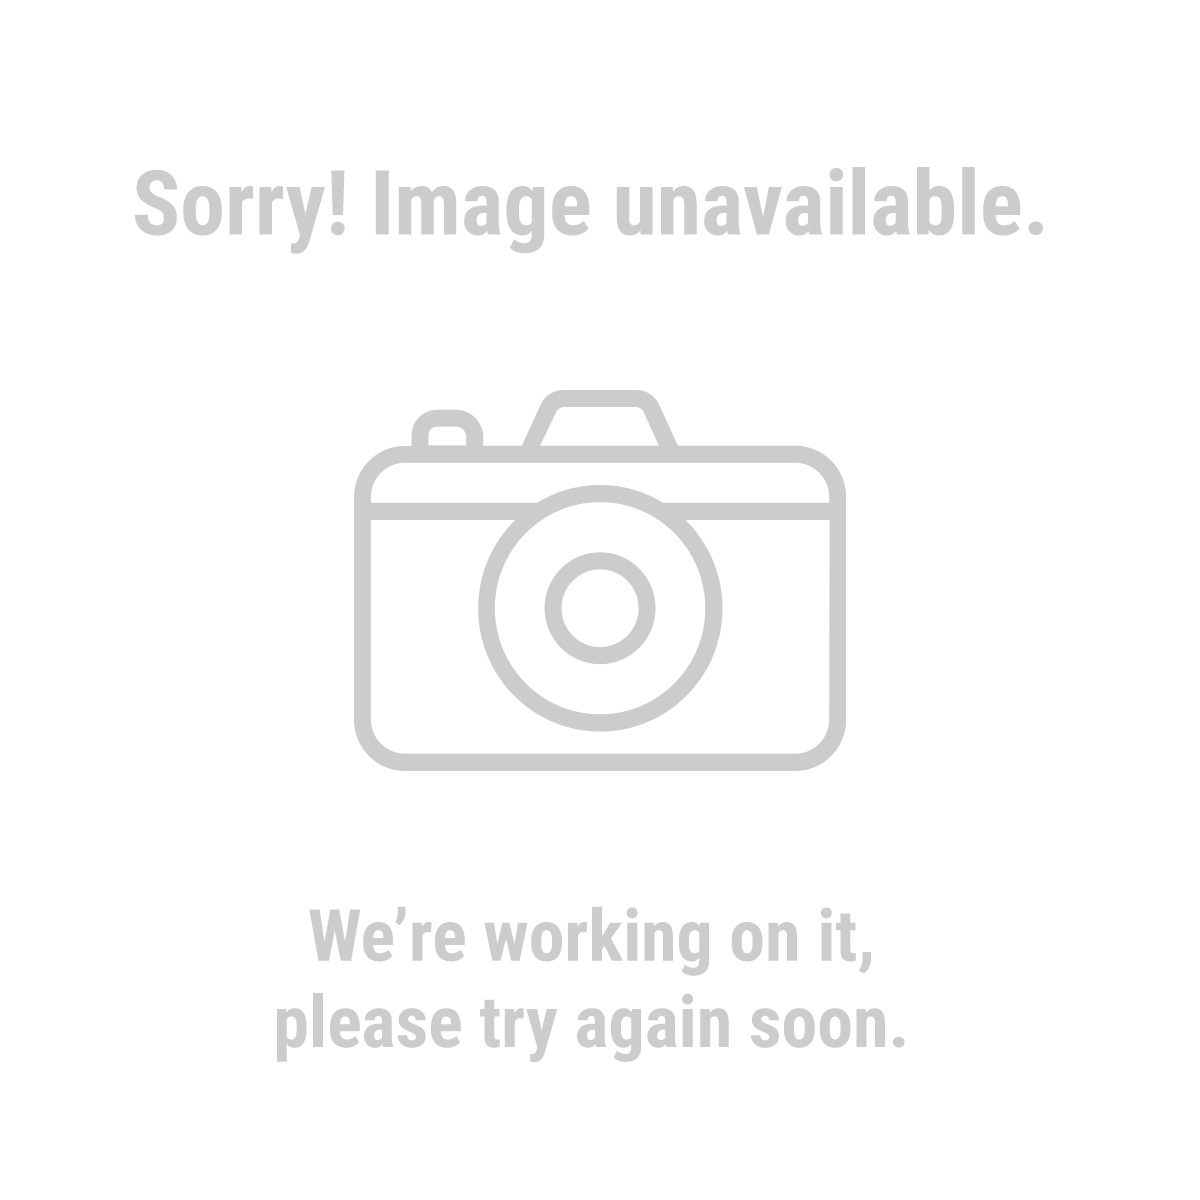 Storehouse 65178 Trunk Organizer